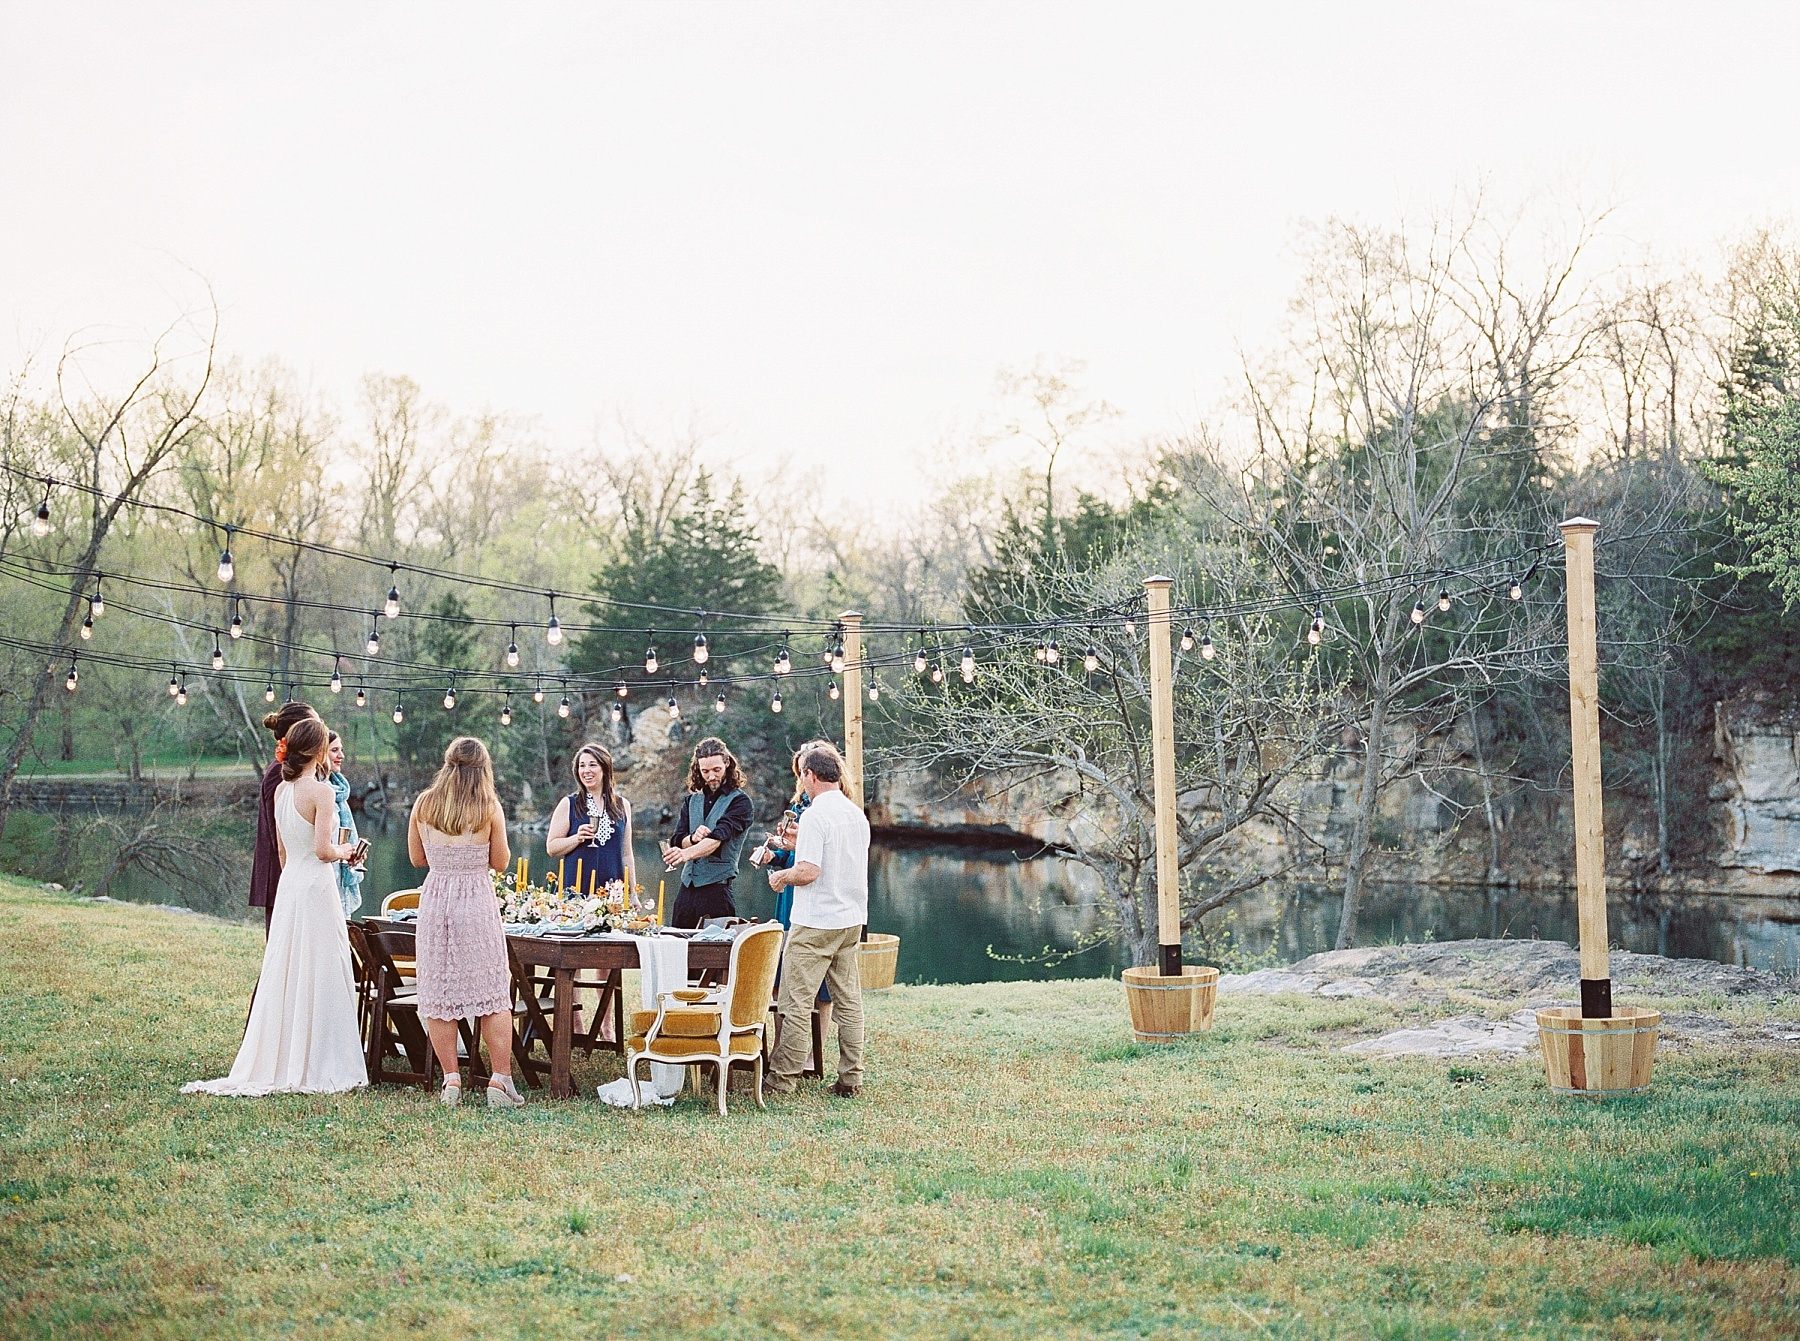 Intimate Spanish and French Inspired Destination Wedding with Lakeside Dinner Party at Dusk at Wildcliff by Kelsi Kliethermes Photography Best Missouri and Maui Wedding Photographer_0015.jpg